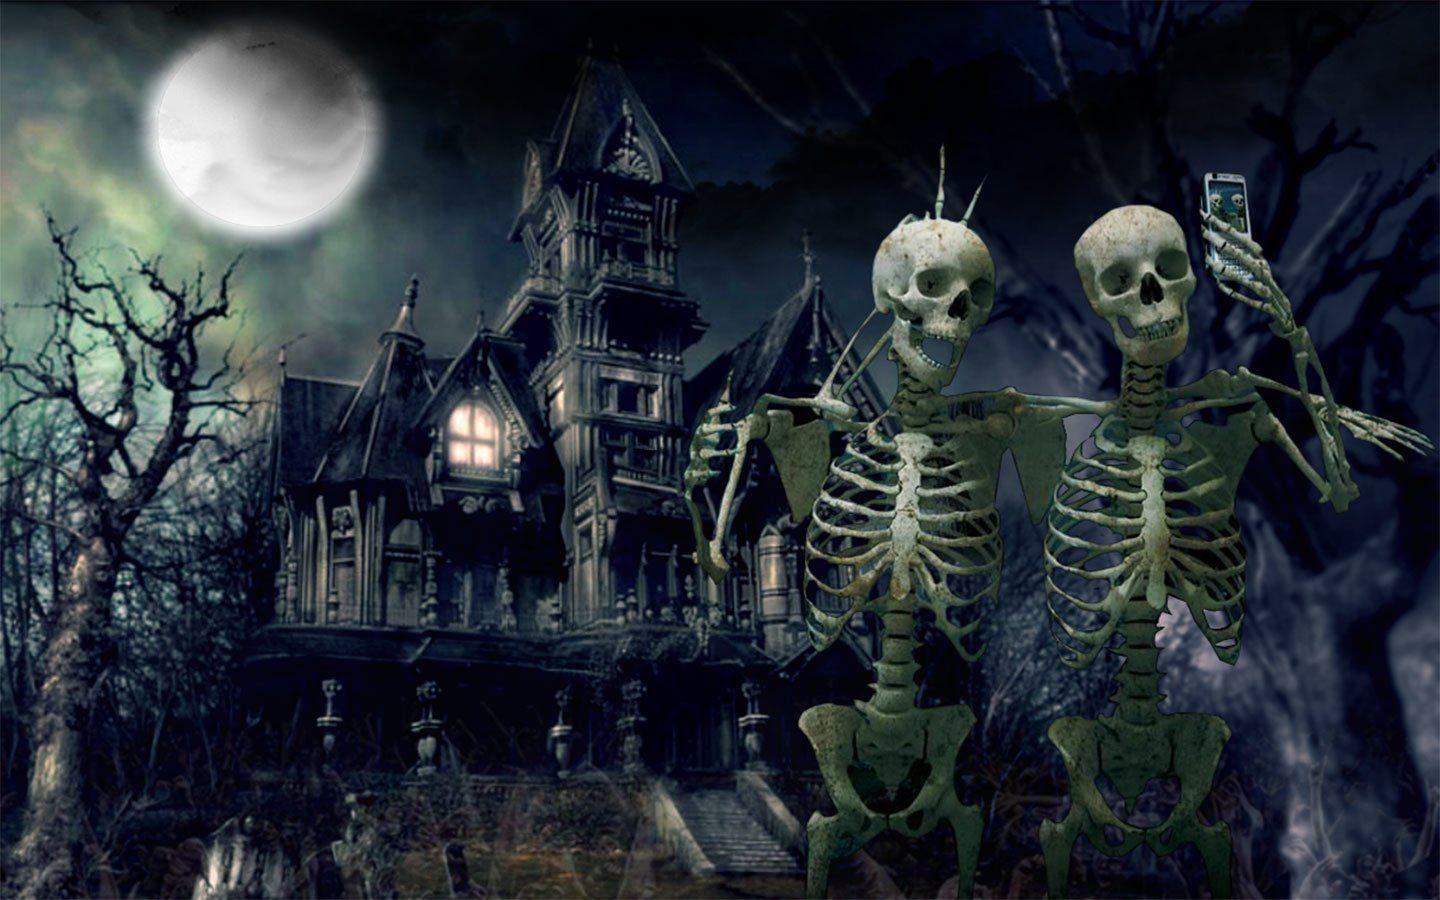 Fantastic Wallpaper Halloween Skeleton - wp2238249  Pictures_561785.jpg